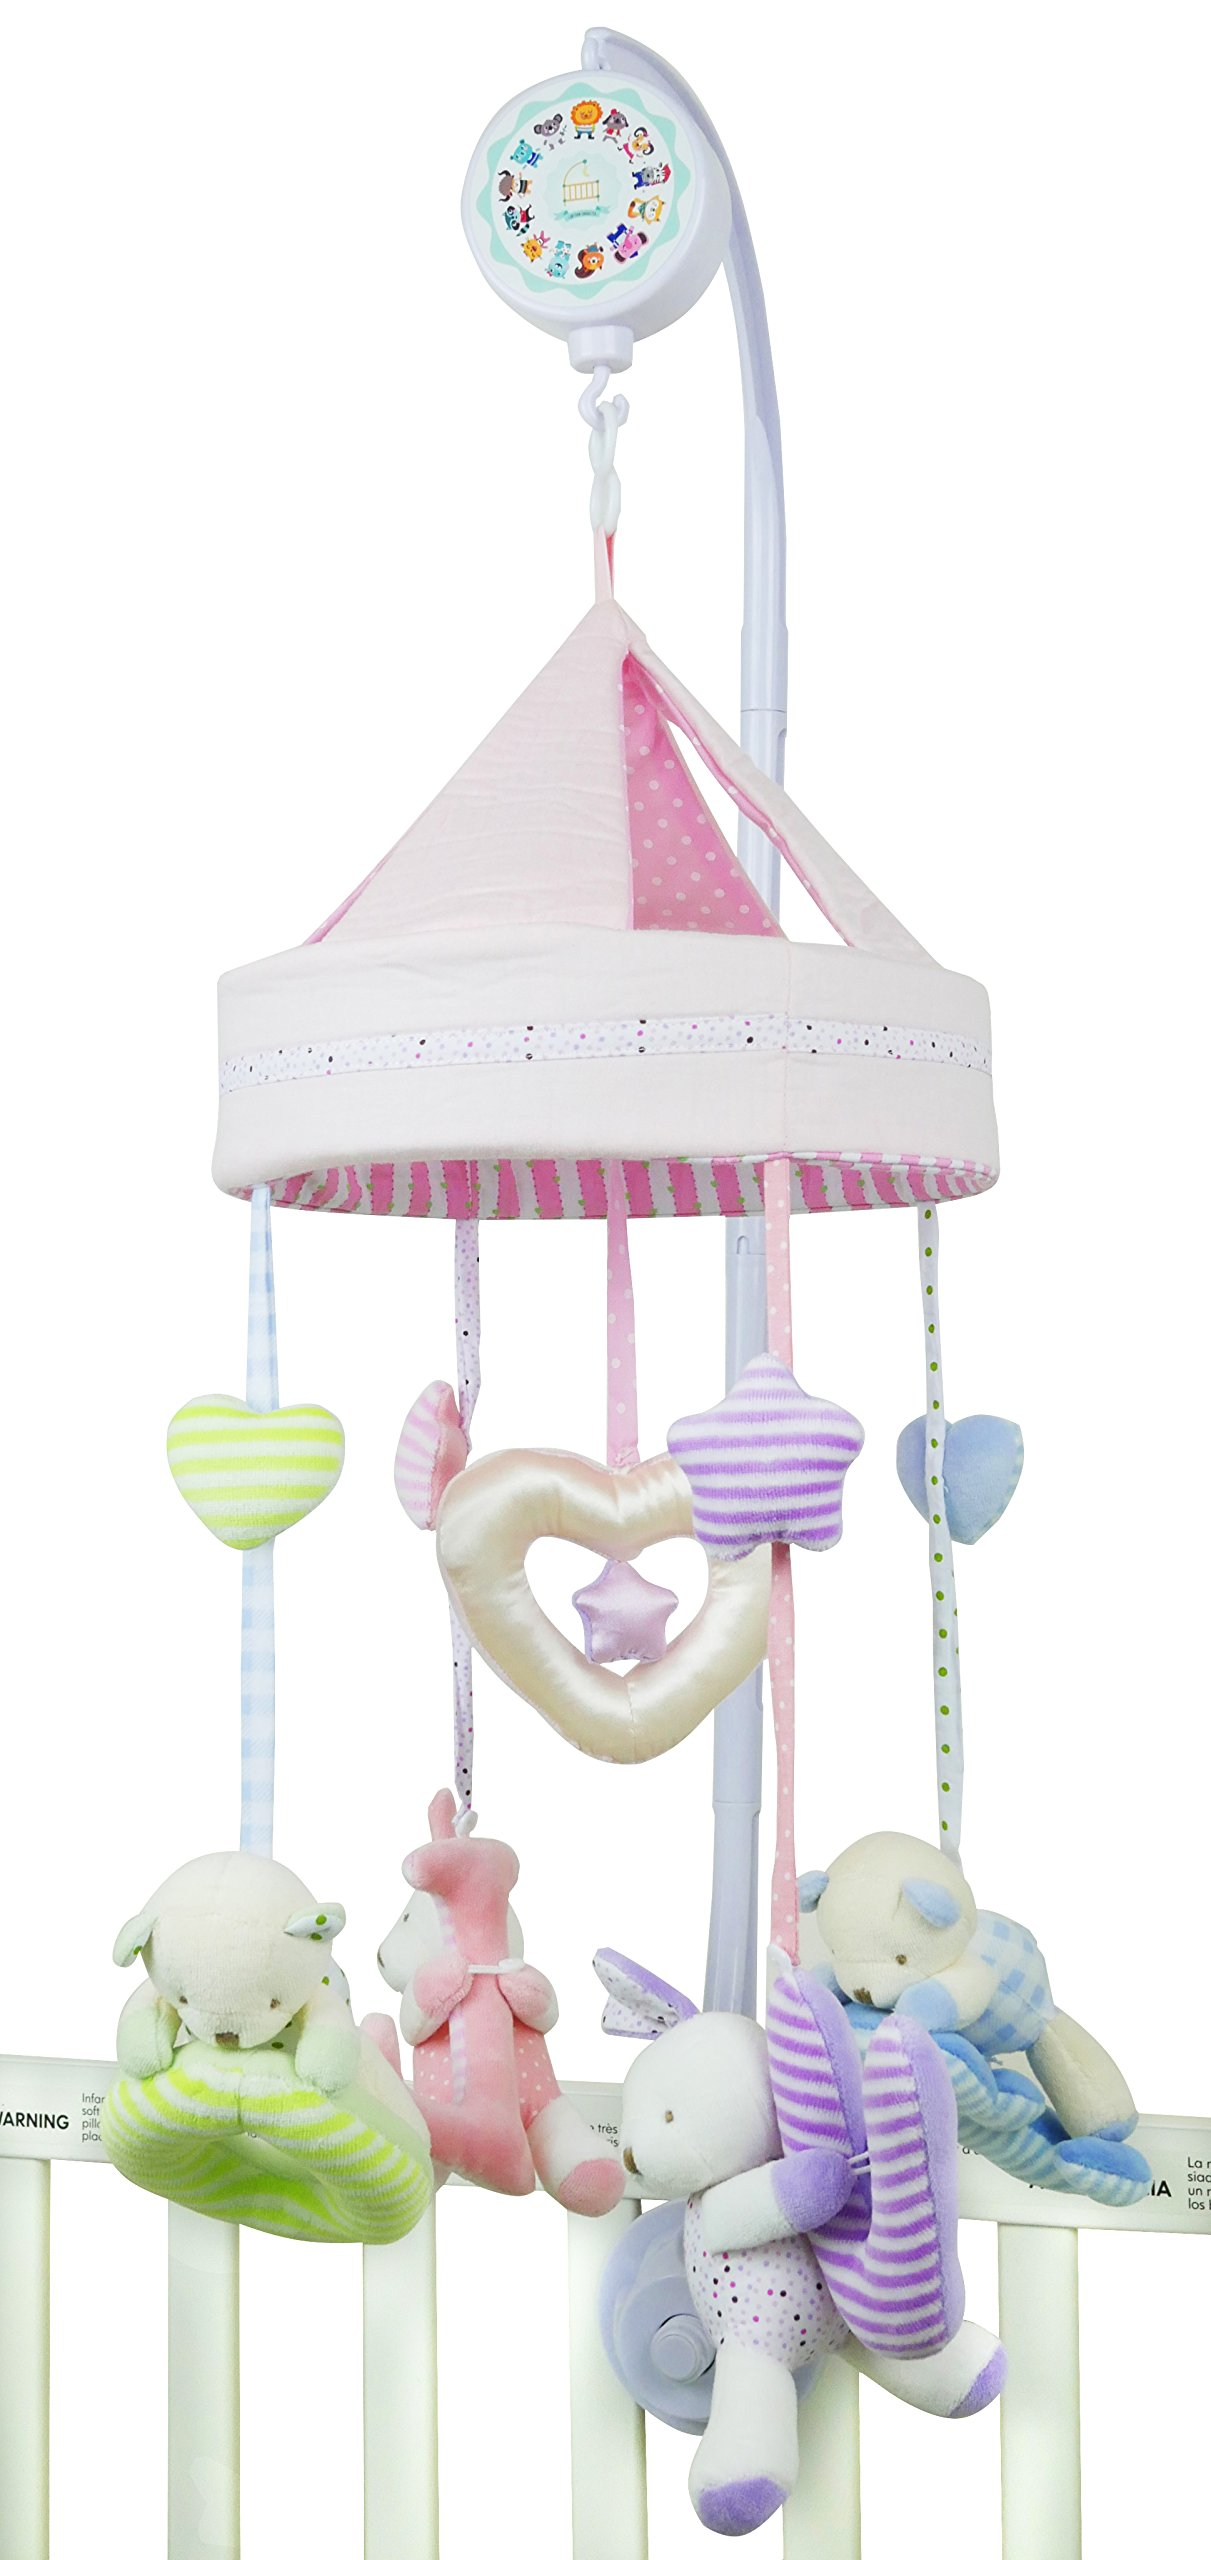 Musical Mobile for Crib with Music Box (SD Card Included) and Adjustable Hanger Great Tool for Baby's Brain Development